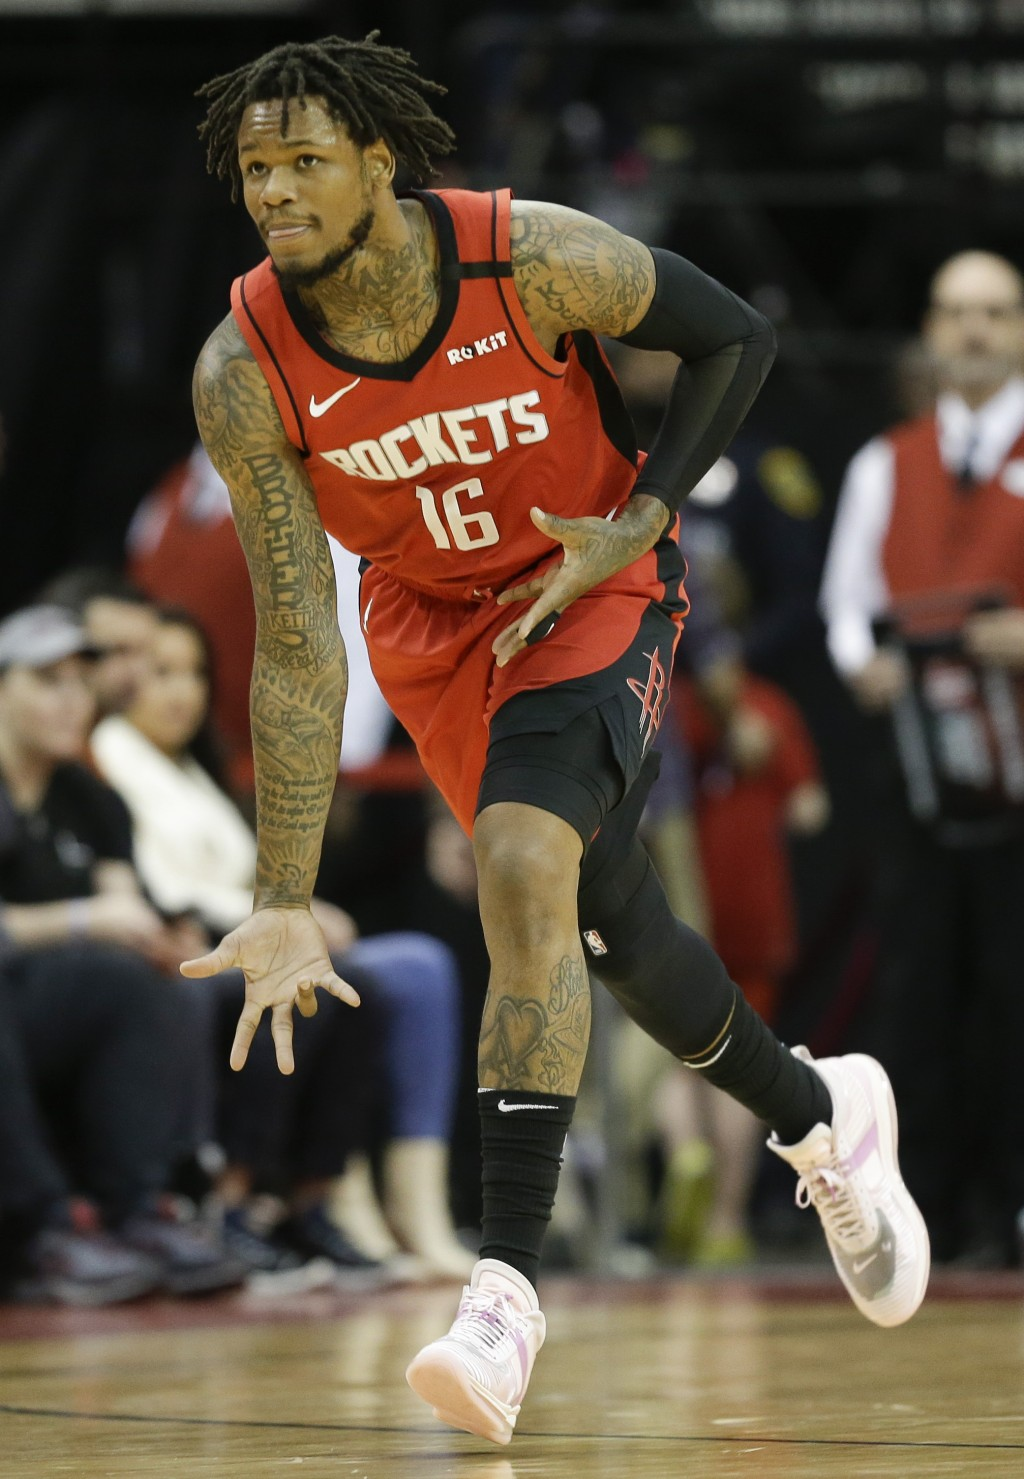 Houston Rockets guard Ben McLemore reacts after making a three-point basket during the first half of an NBA basketball game against the New Orleans Pe...